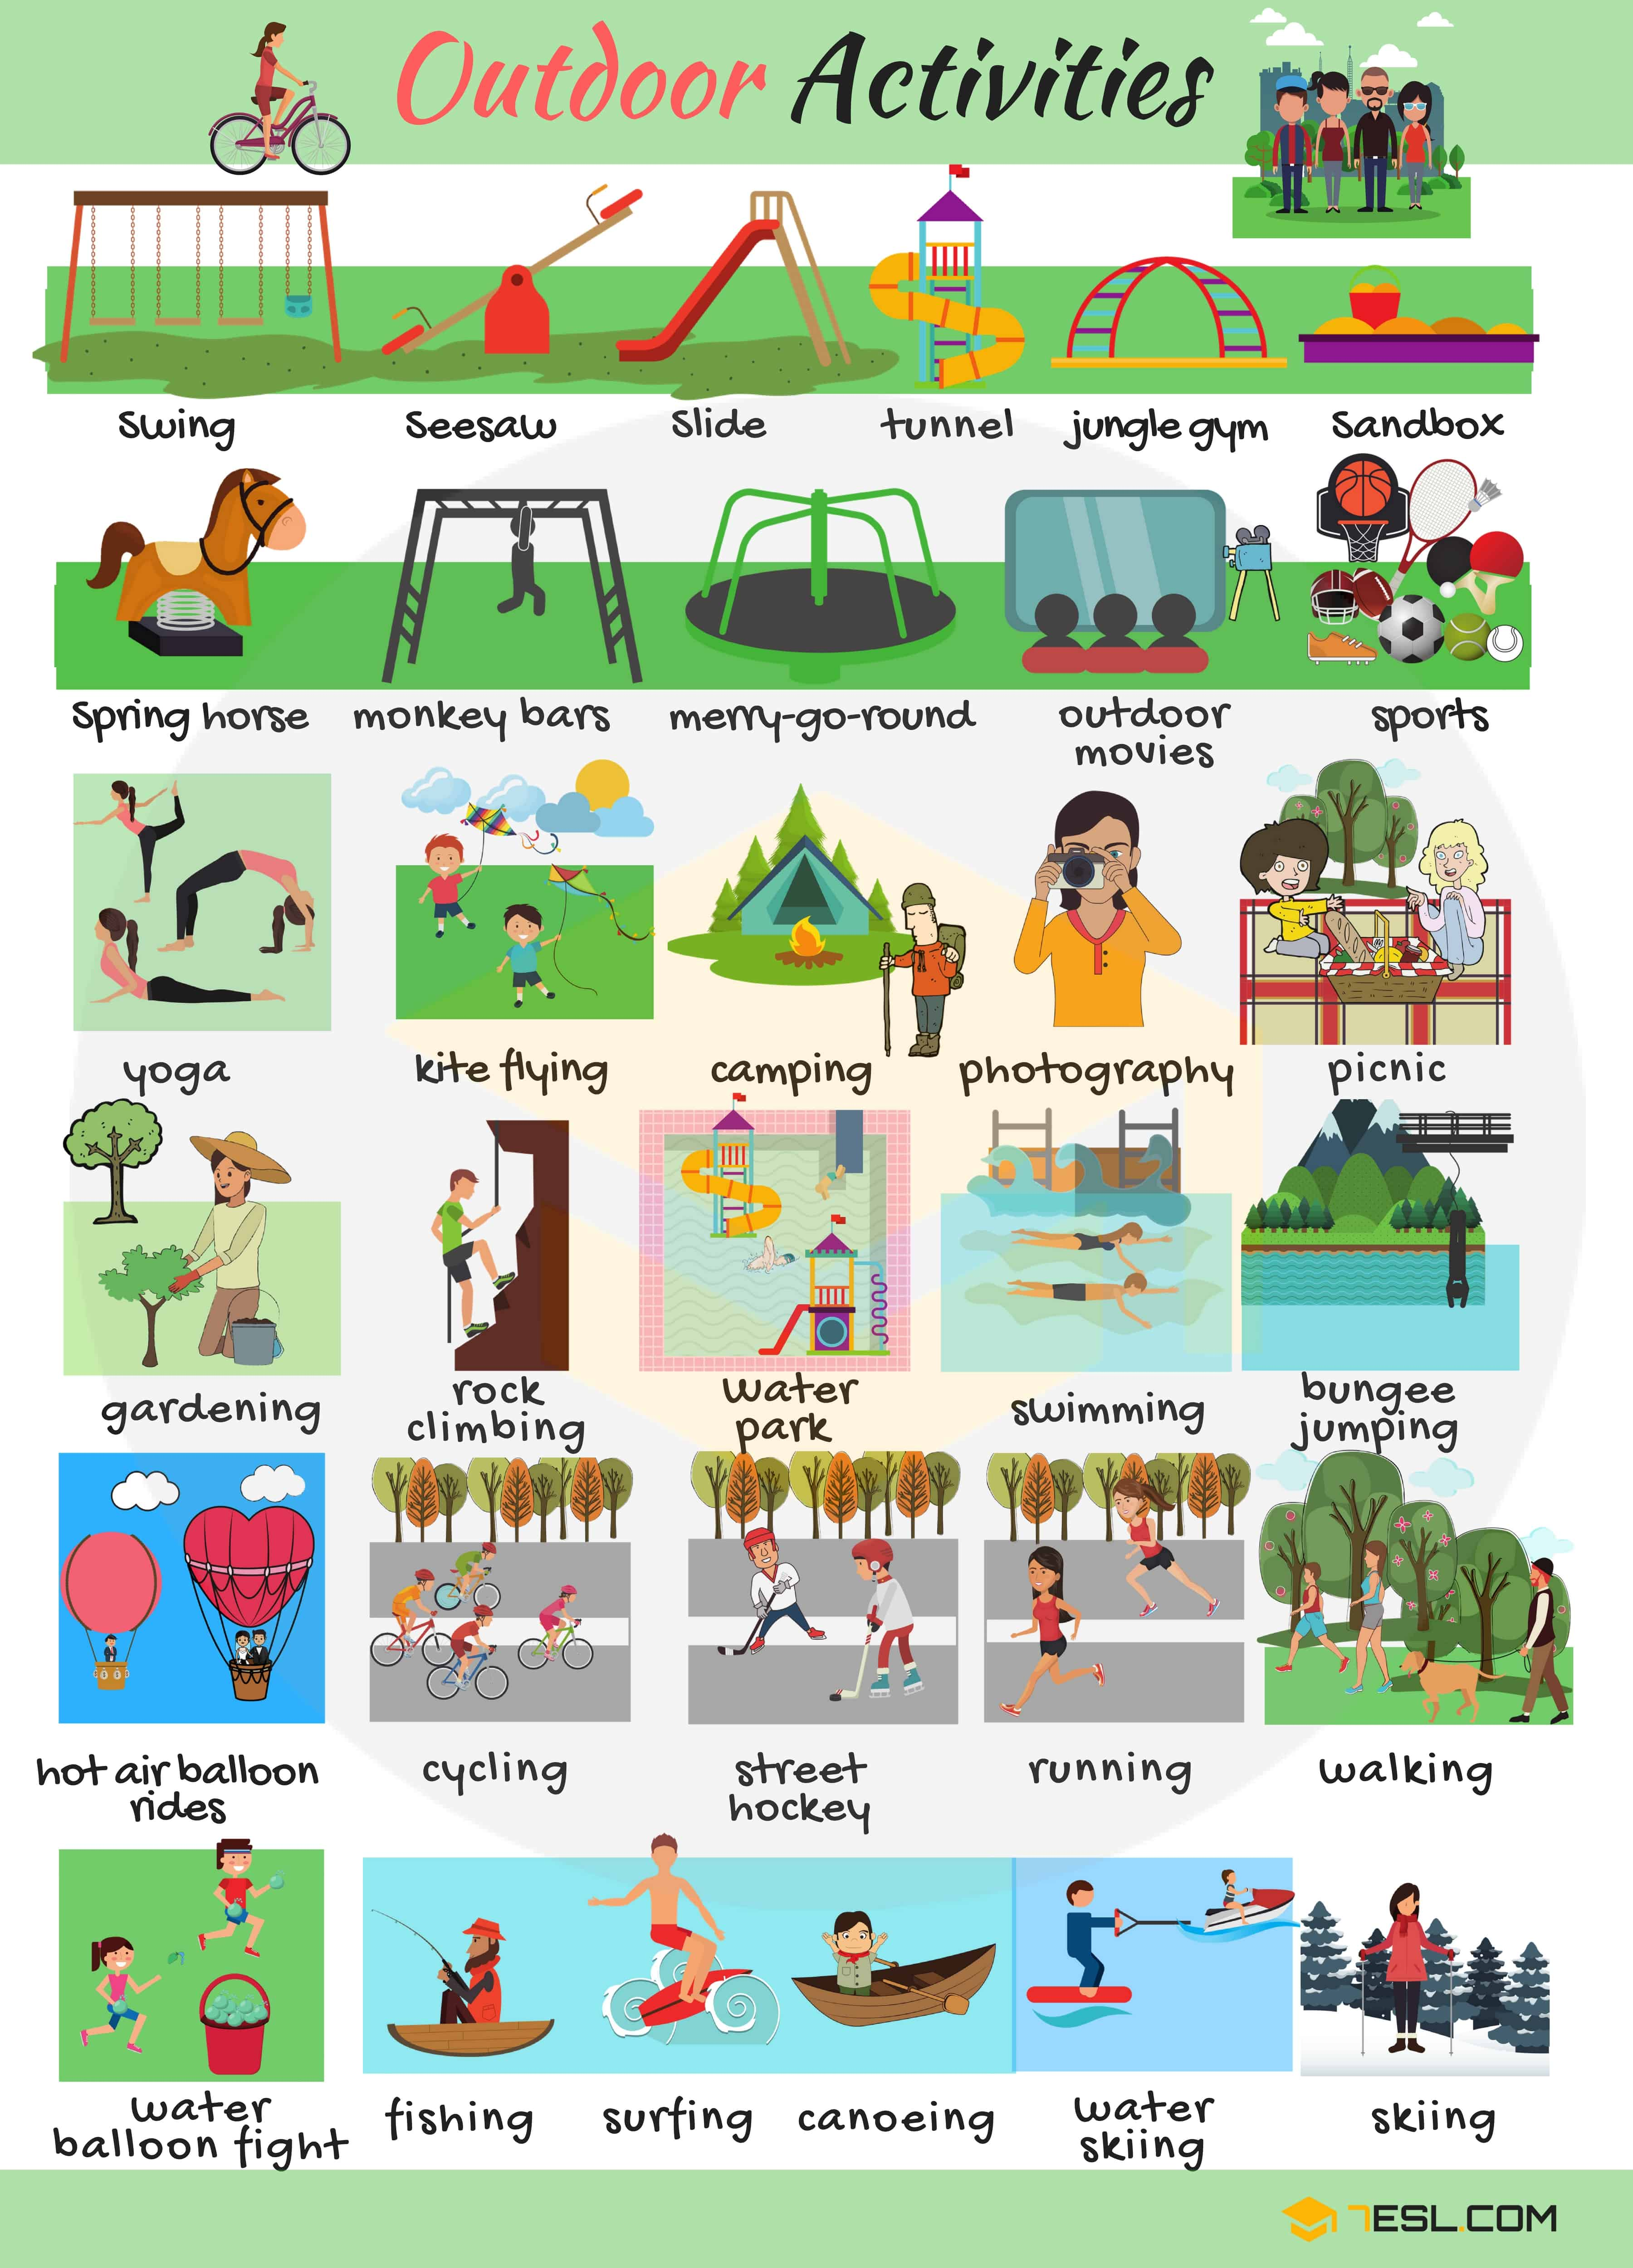 Esl Games Outdoor Games List Of Useful Outdoor Games With Pictures 7 E S L